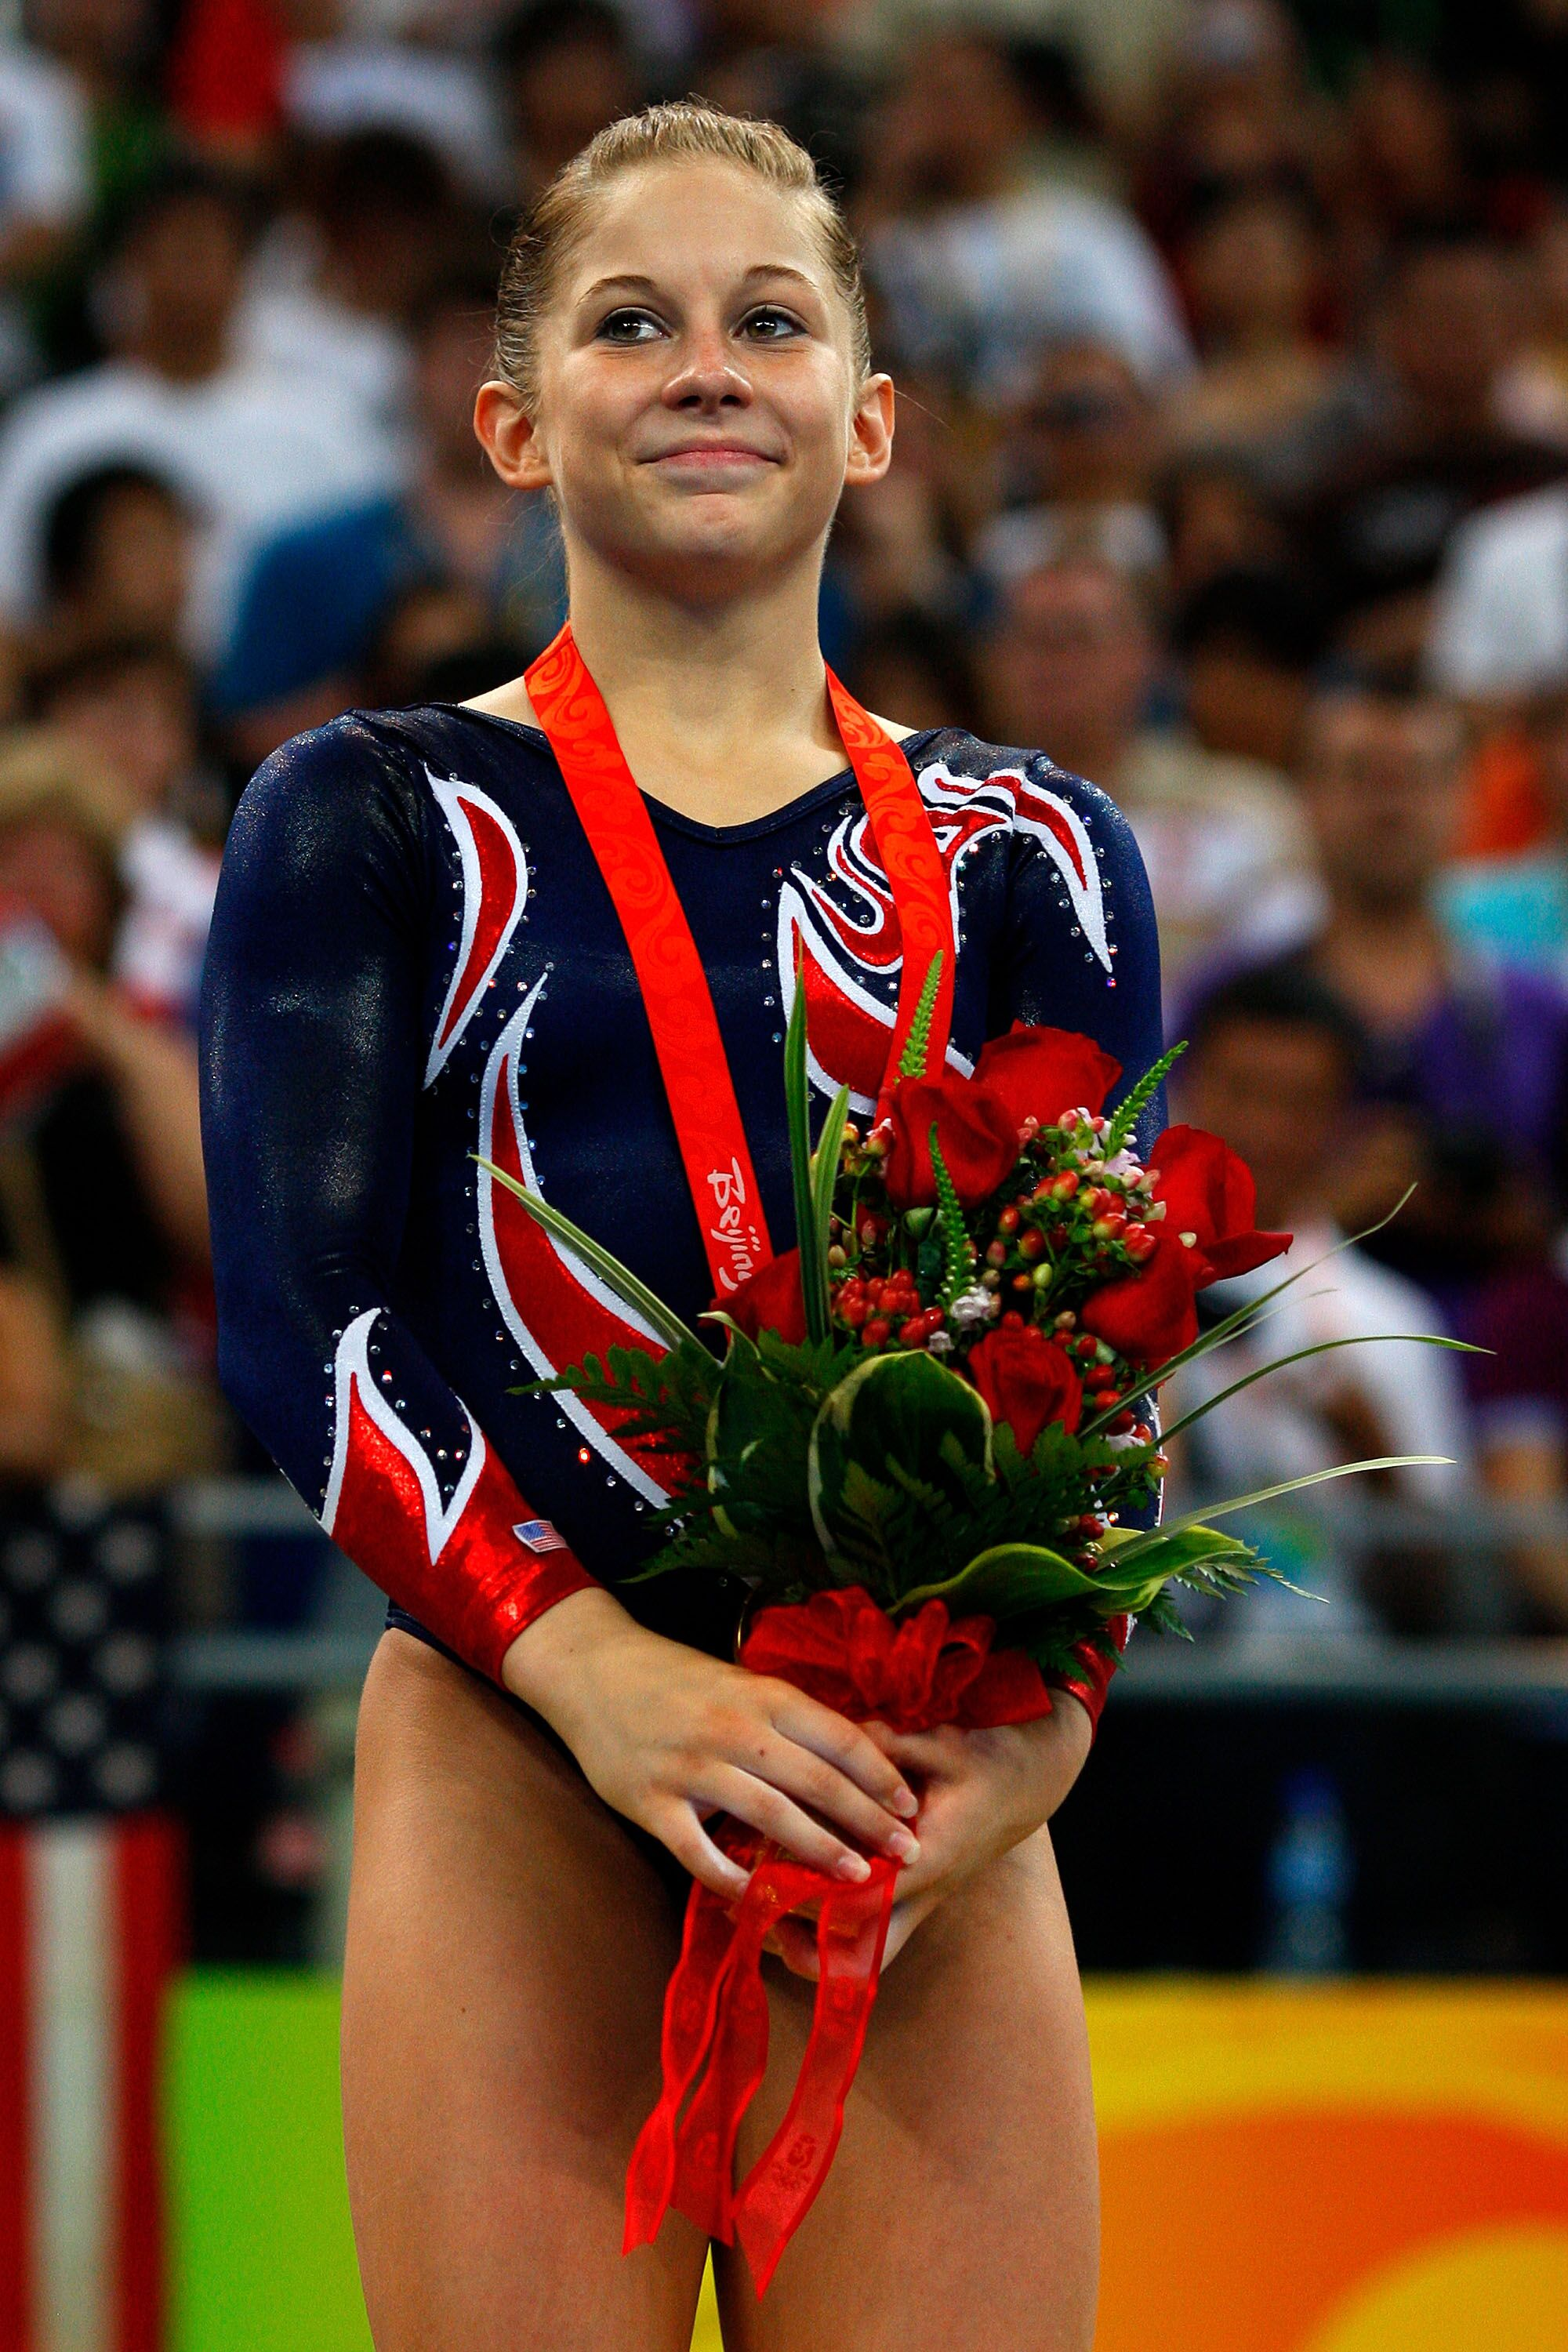 Shawn Johnson of the USA smiles as she stands on the podium during the medal ceremony for the Women's Beam Final at the National Indoor Stadium on Day 11 of the Beijing 2008 Olympic Games on August 19, 2008 in Beijing, China | Photo: Getty Images